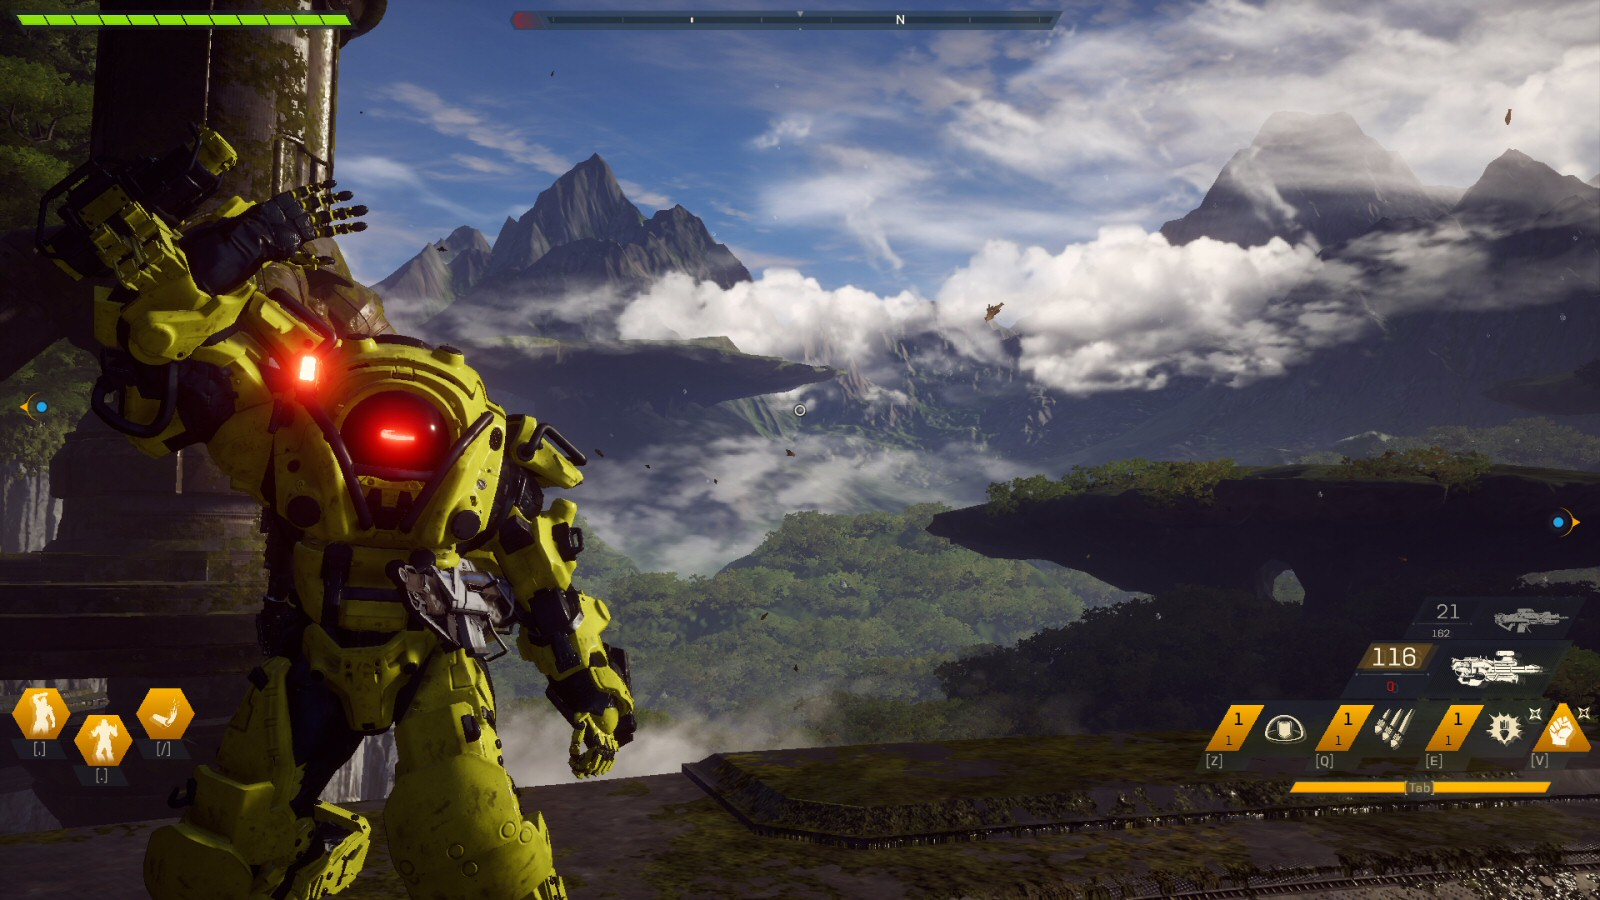 Remember Anthem? That's the one with the Iron Man armor, the really pretty skybox, the huge marketing campaign, and NOTHING ELSE going for it. I get bored just looking at these old screenshots.